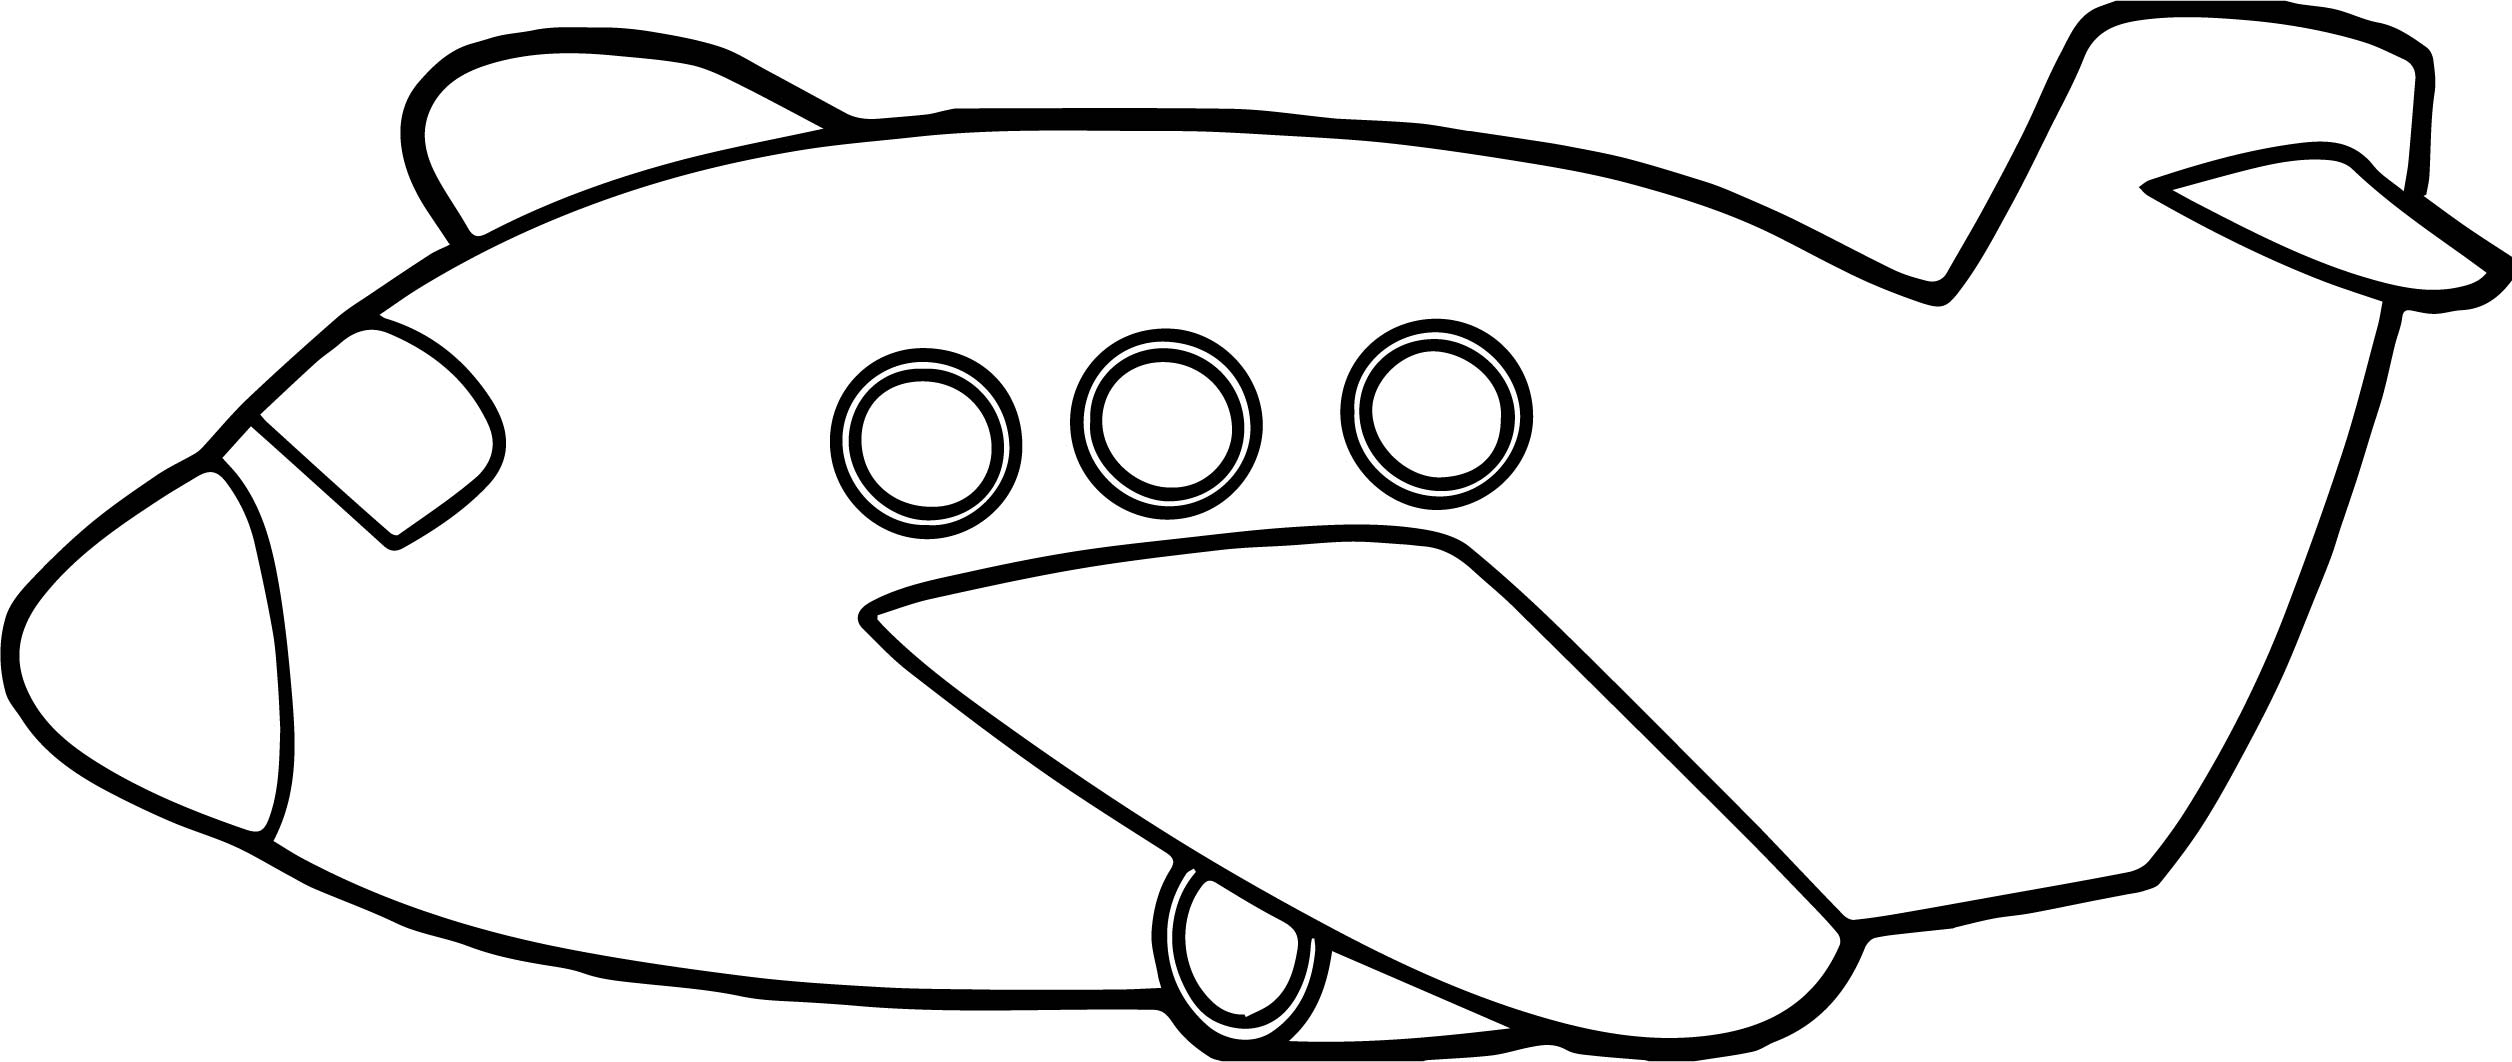 air force planes coloring pages virtren com - Air Force Coloring Pages Printable